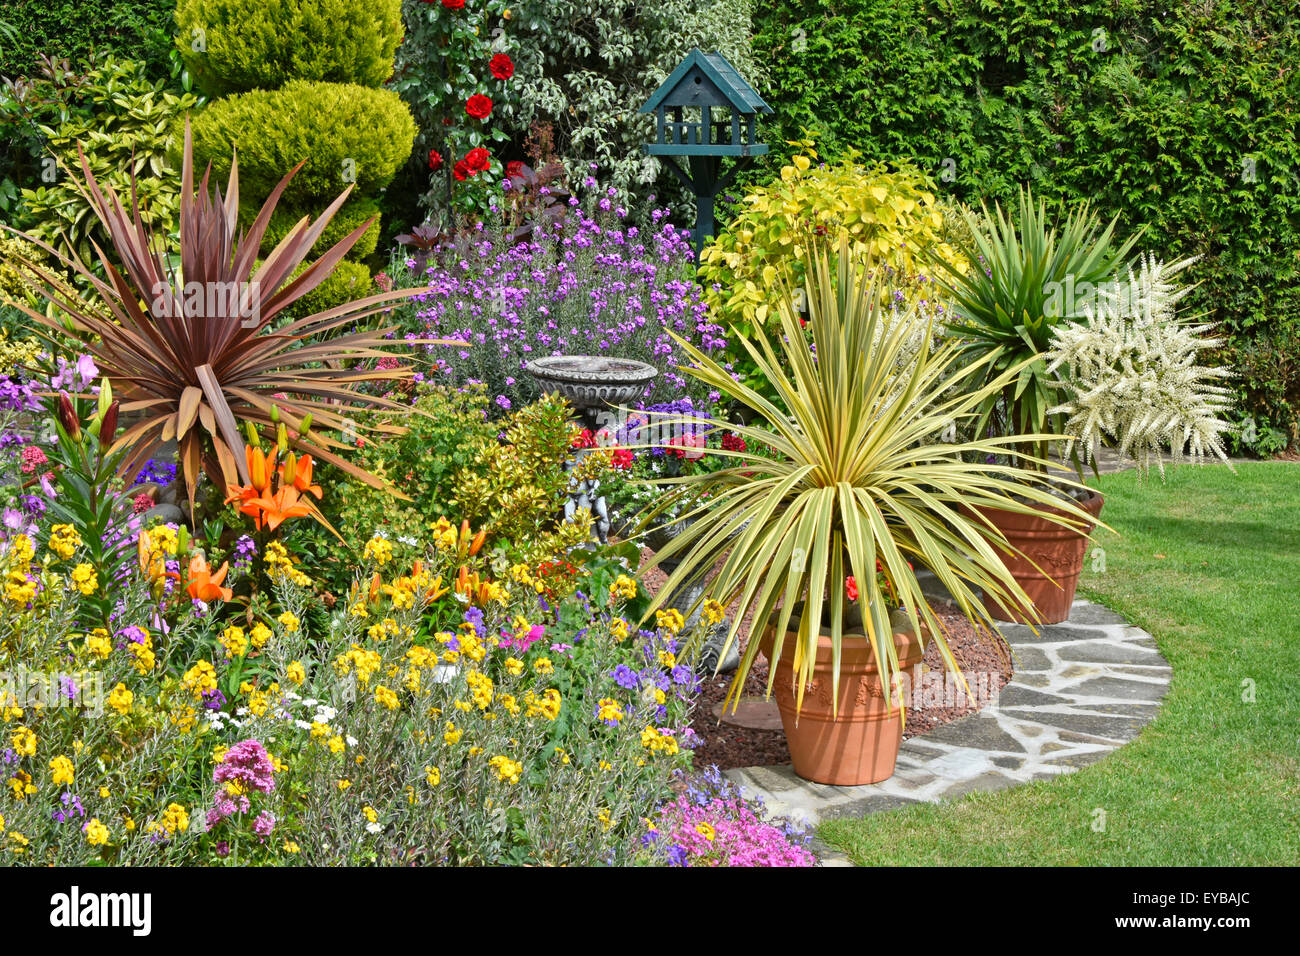 Back garden mixed planting for colour effect & potted plants for flexible varied arrangements with conifer hedge - Stock Image